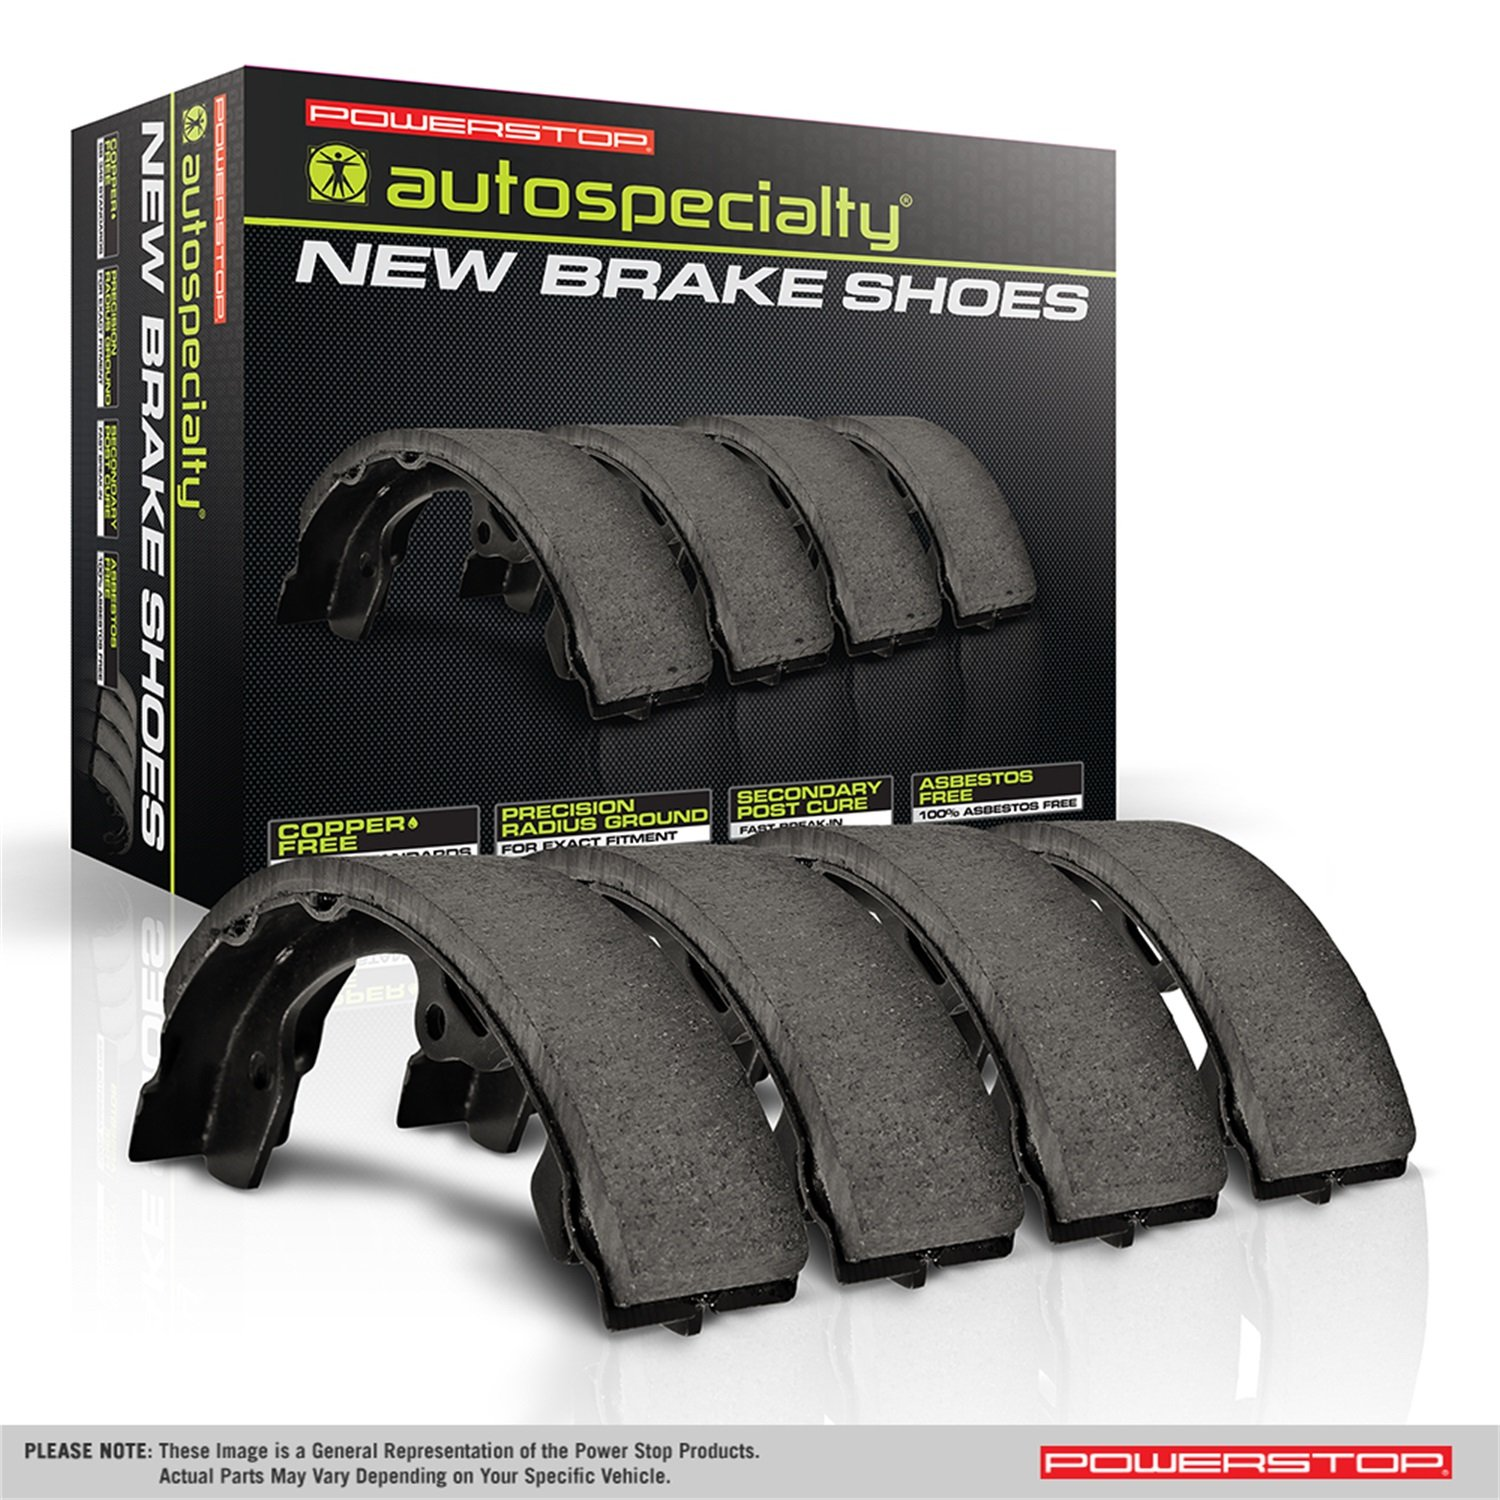 Power Stop B1046L Rear Autospecialty Brake Shoes